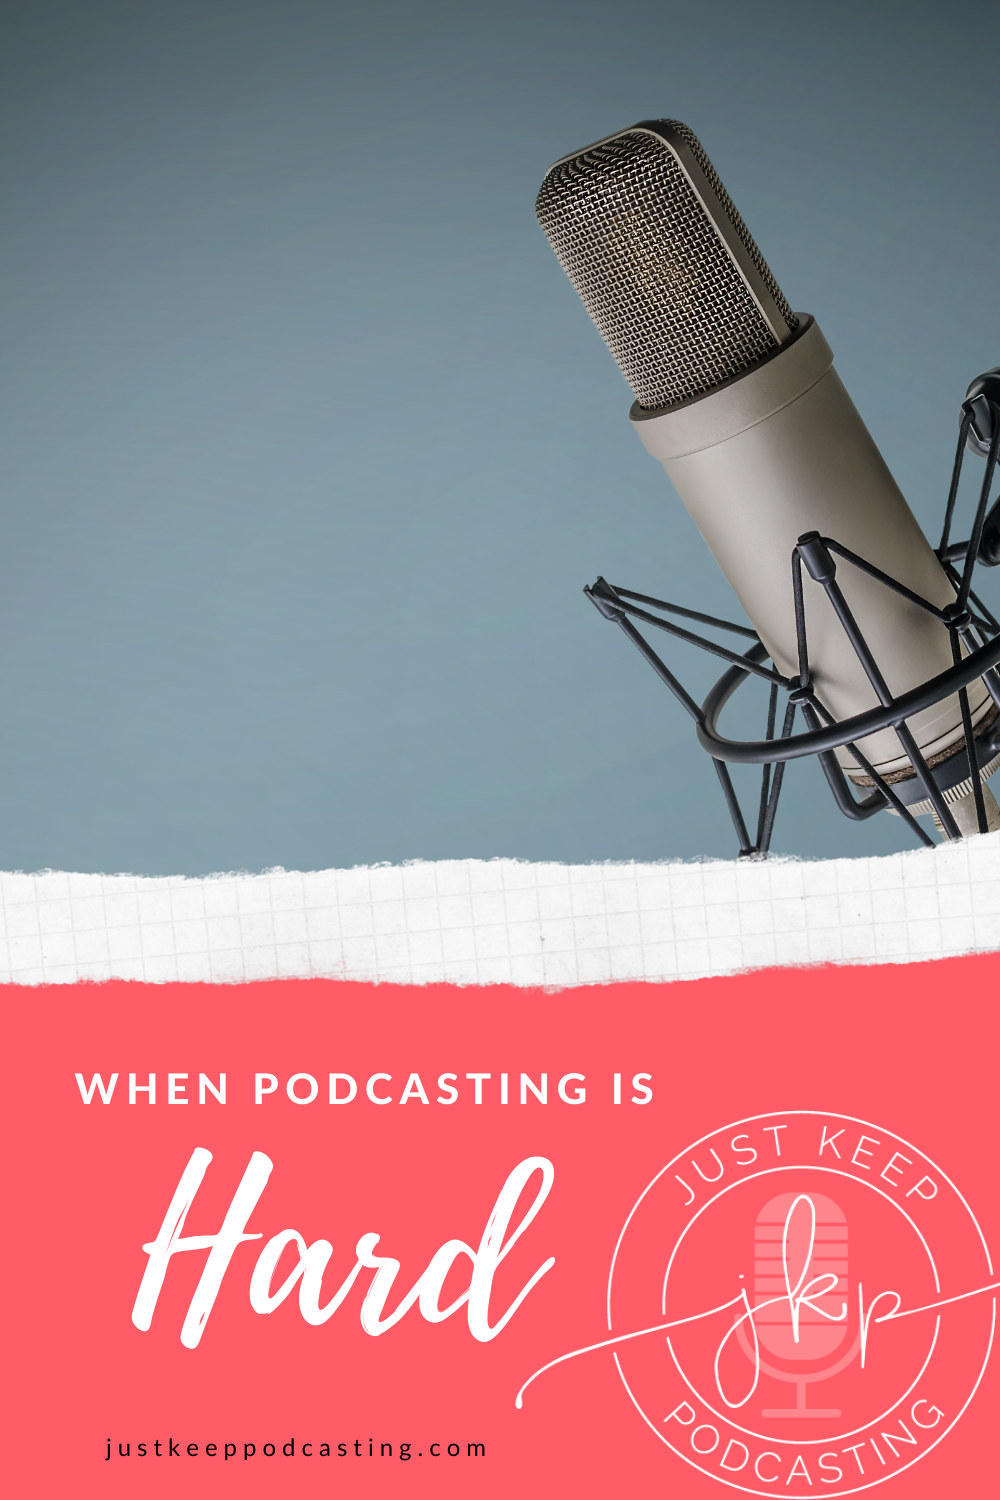 When Podcasting Gets hard, how do you keep going